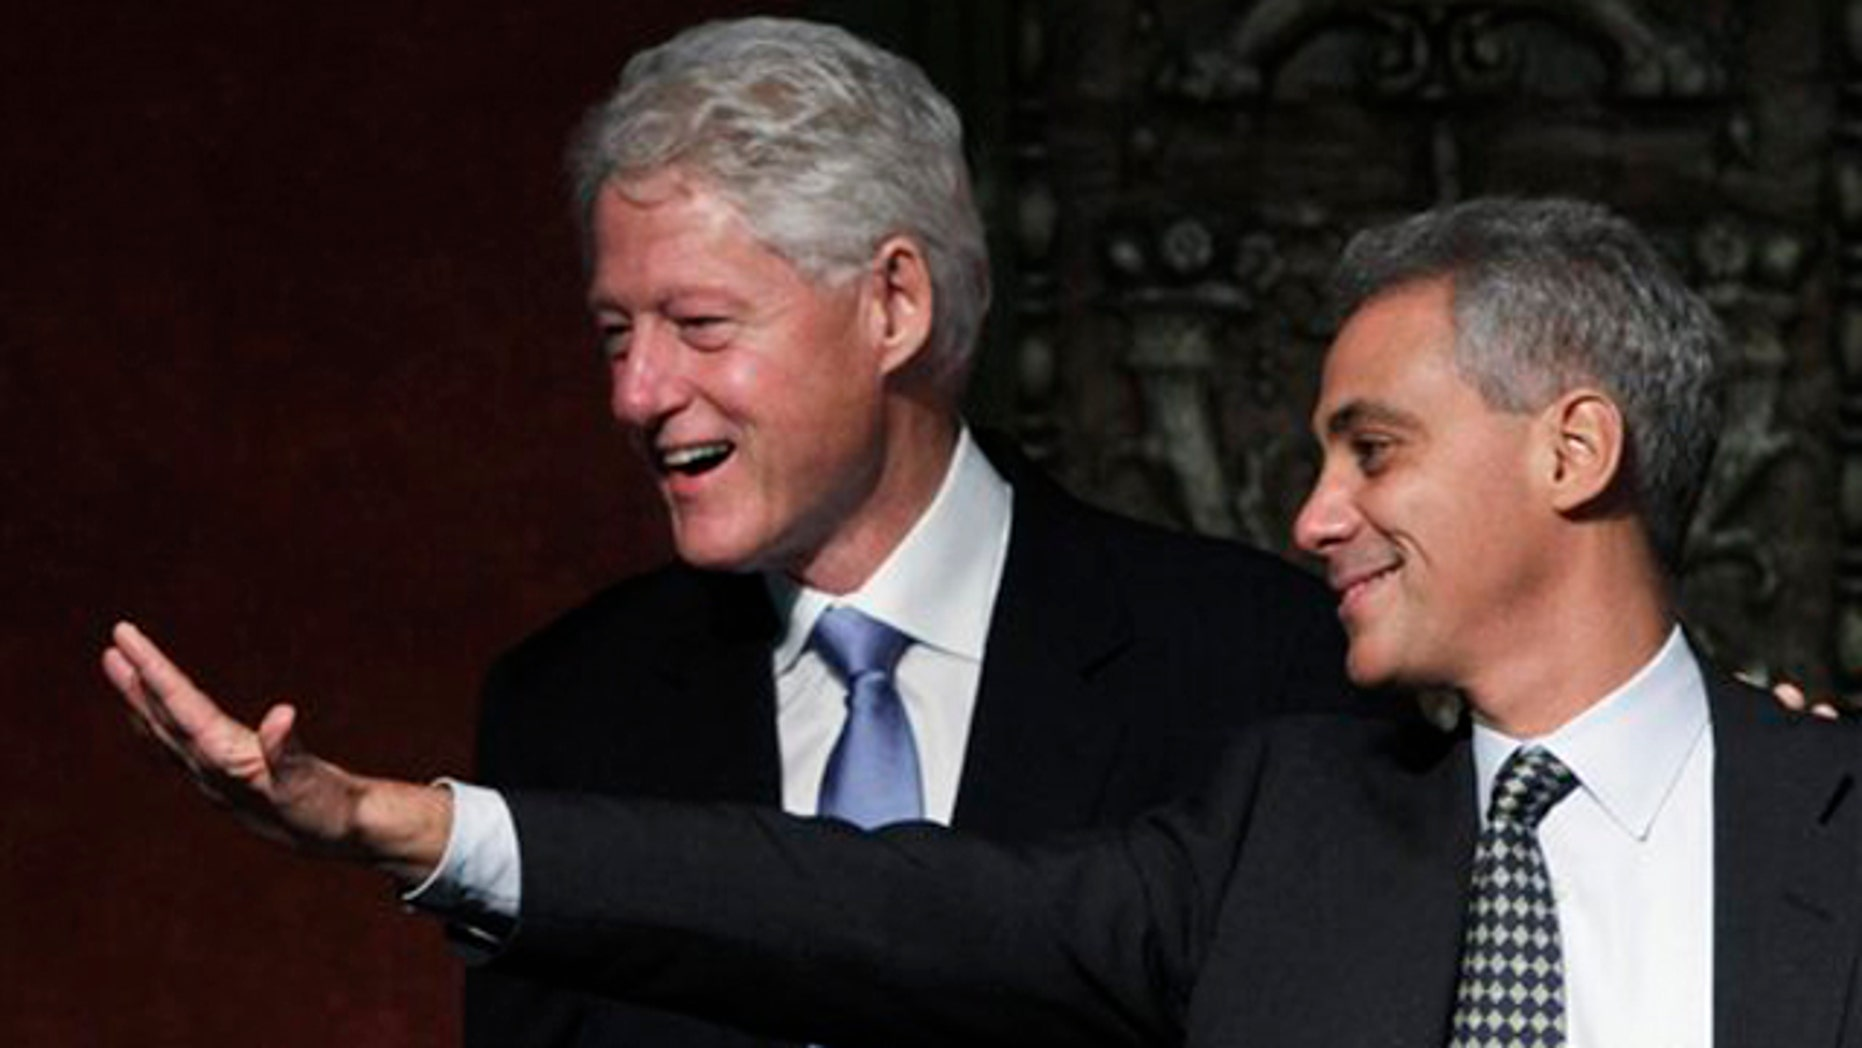 In this Jan. 18 file photo, former President Bill Clinton appears at a rally for Chicago mayoral candidate Rahm Emanuel in Chicago.